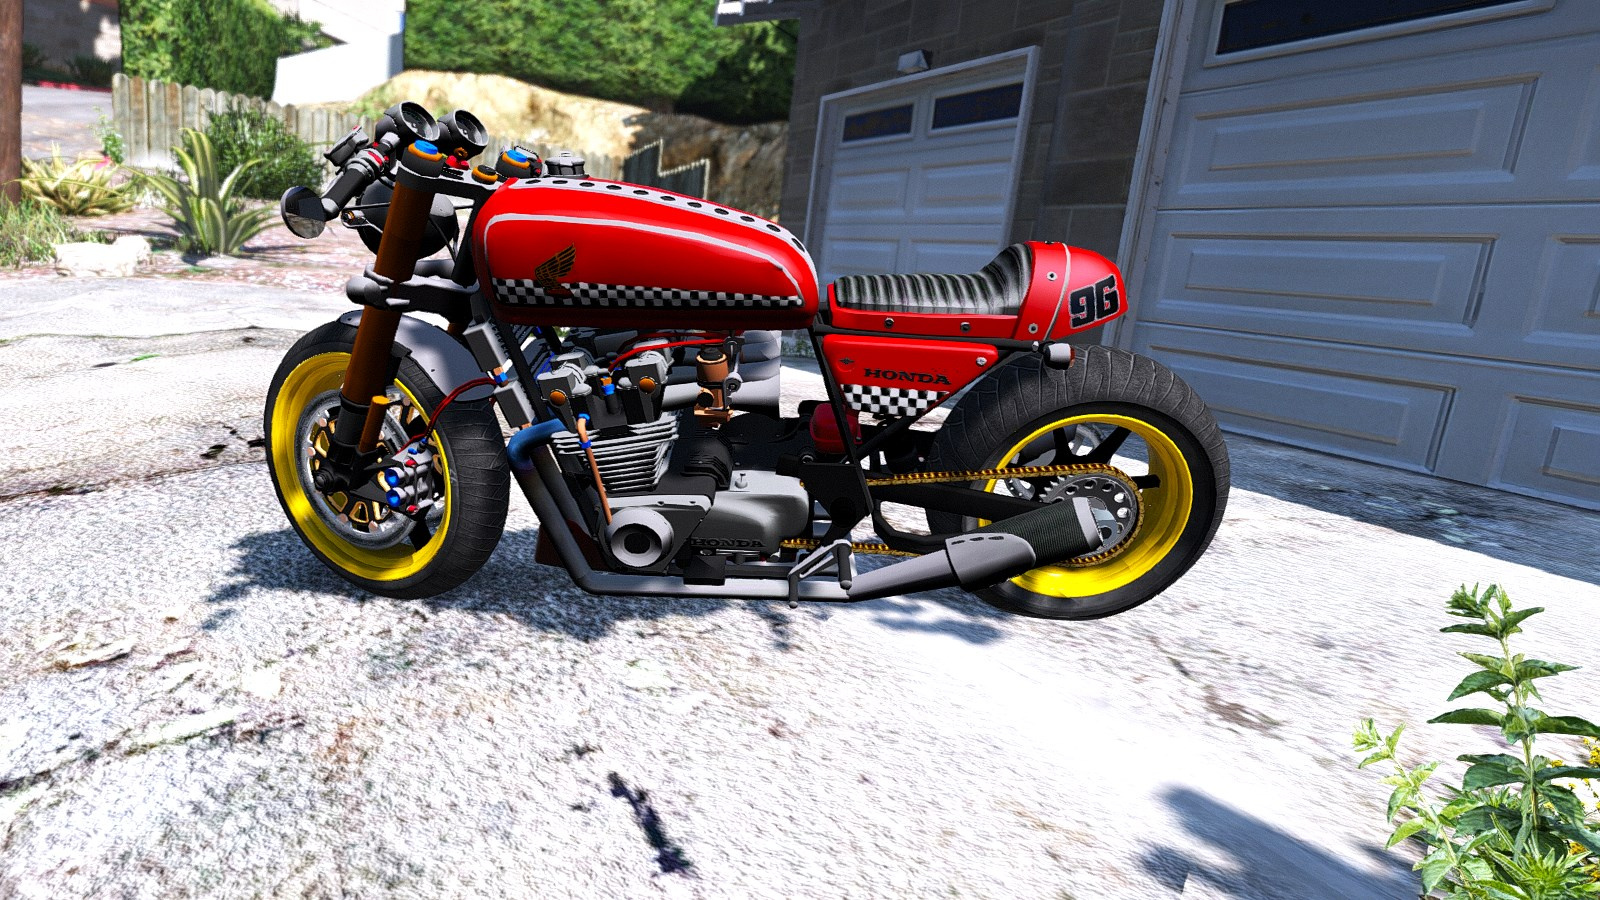 Honda CB750 Cafe Racer Animated